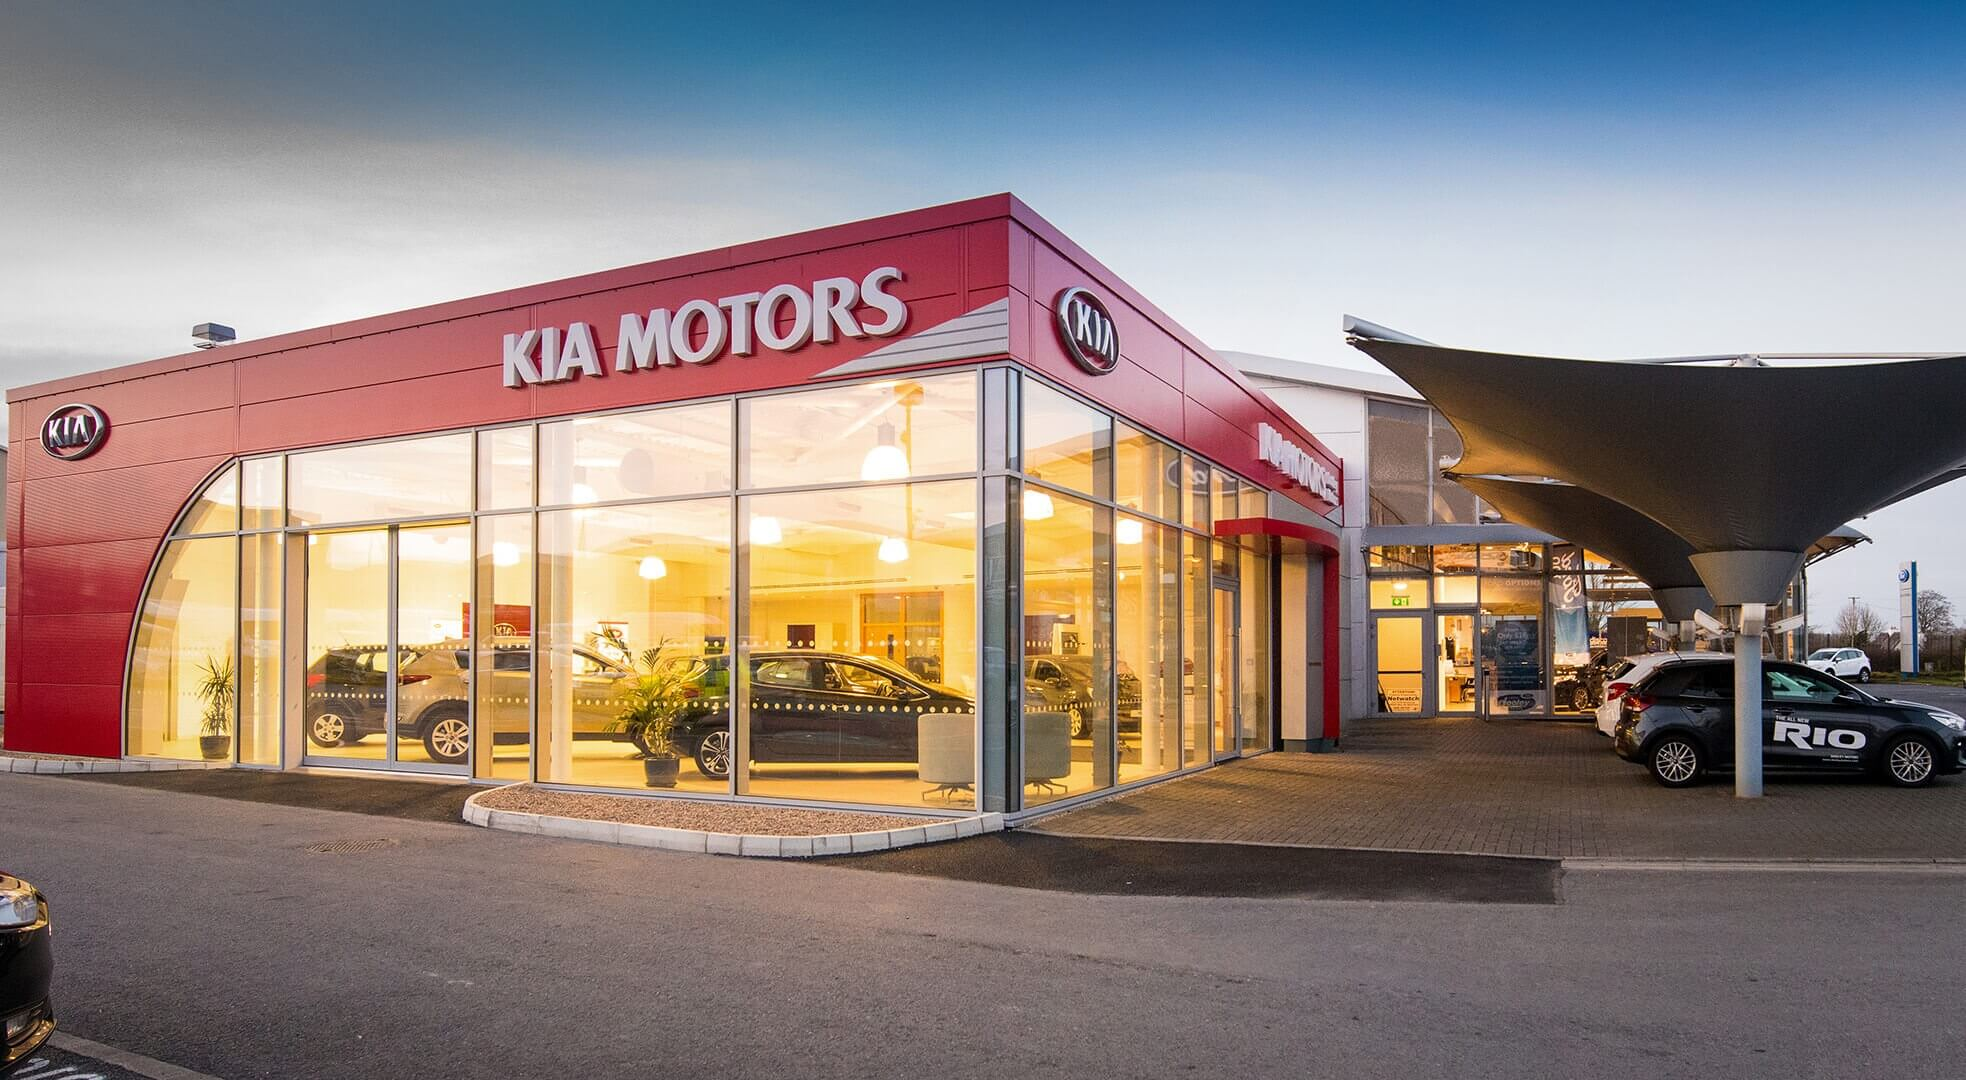 Kia Ireland 'Kia Cube', Dooley Motors, Sleaty Road Roundabout, Co. Carlow, Ireland